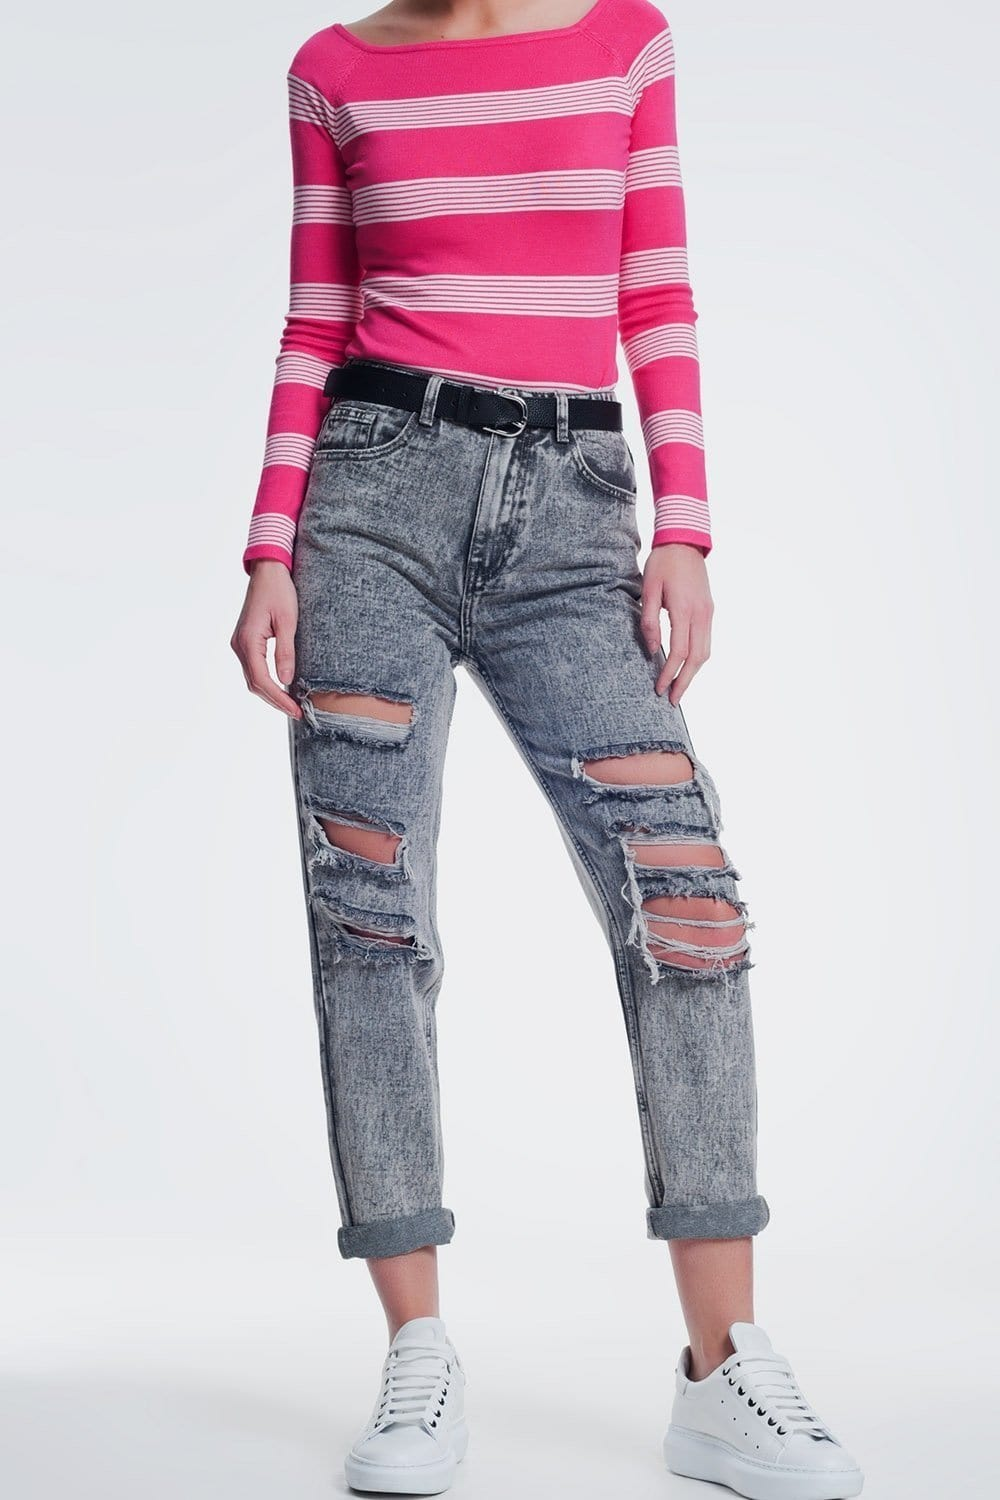 Ripped Straight Jeans in Gray - Himelhoch's